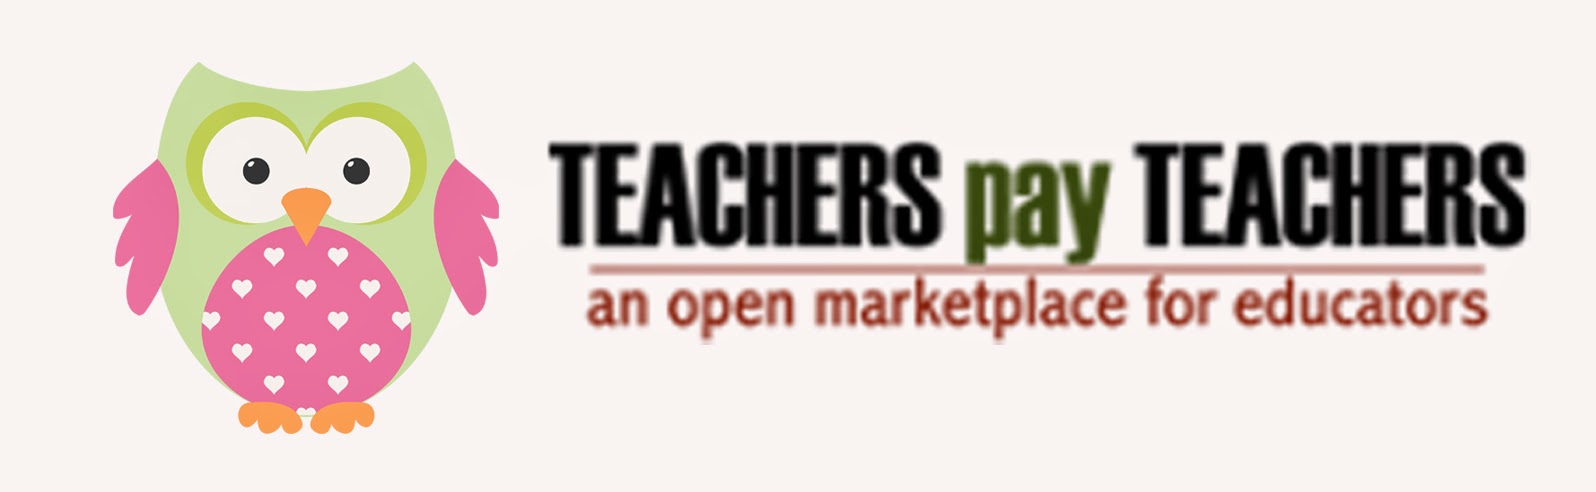 Stop by my TPT store